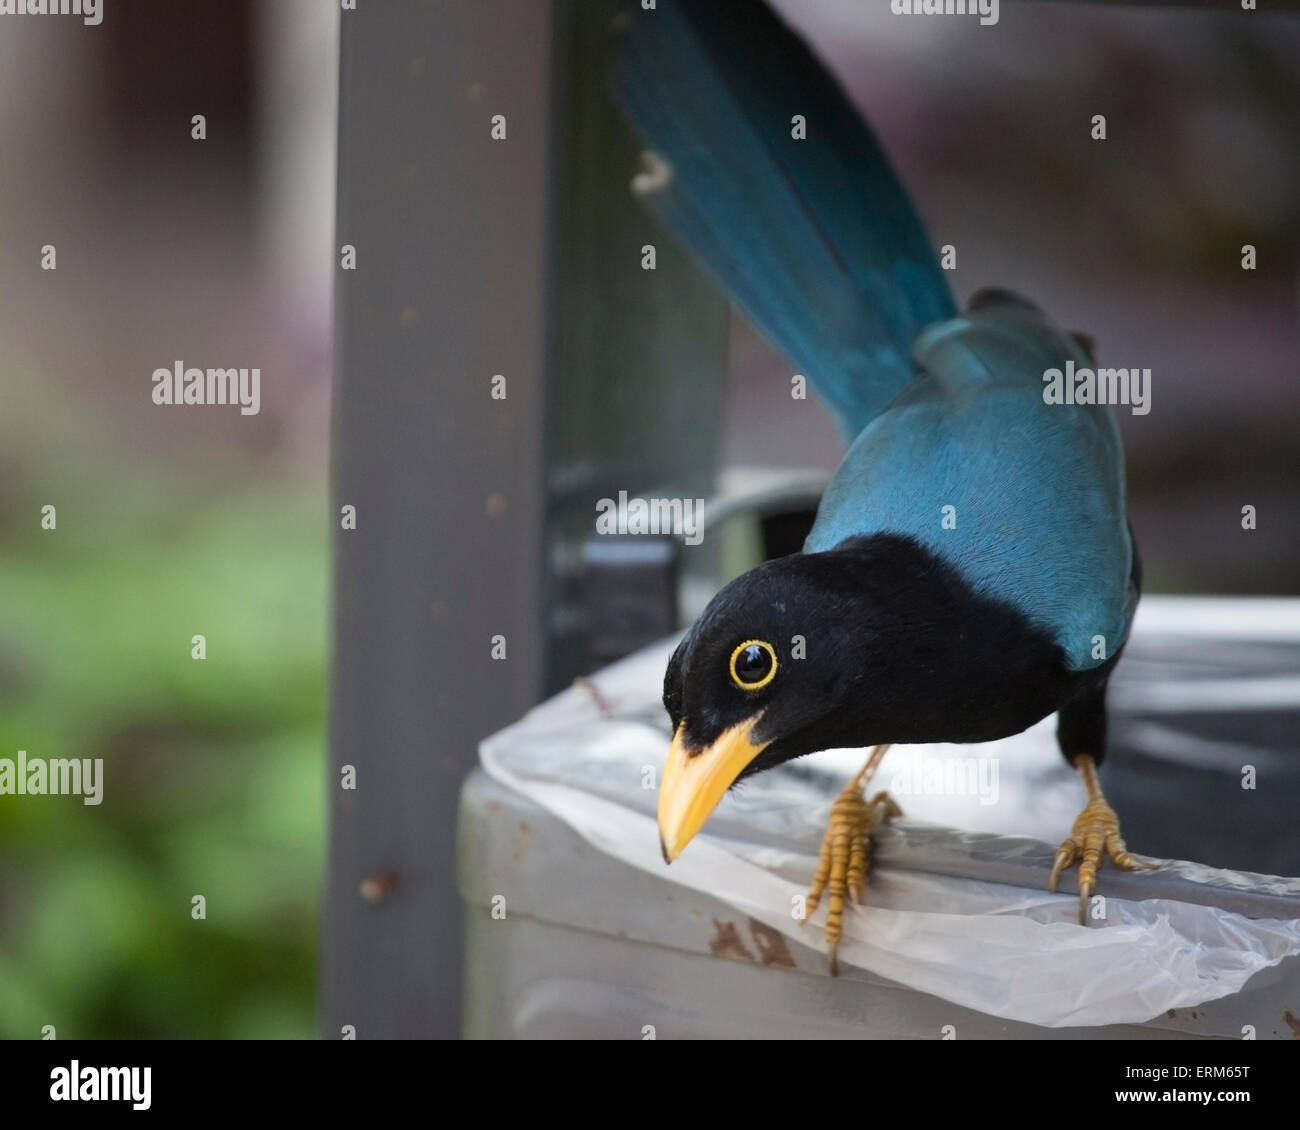 Yucatan jay (Cyanocorax yucatanicus) perched on garbage can. - Stock Image